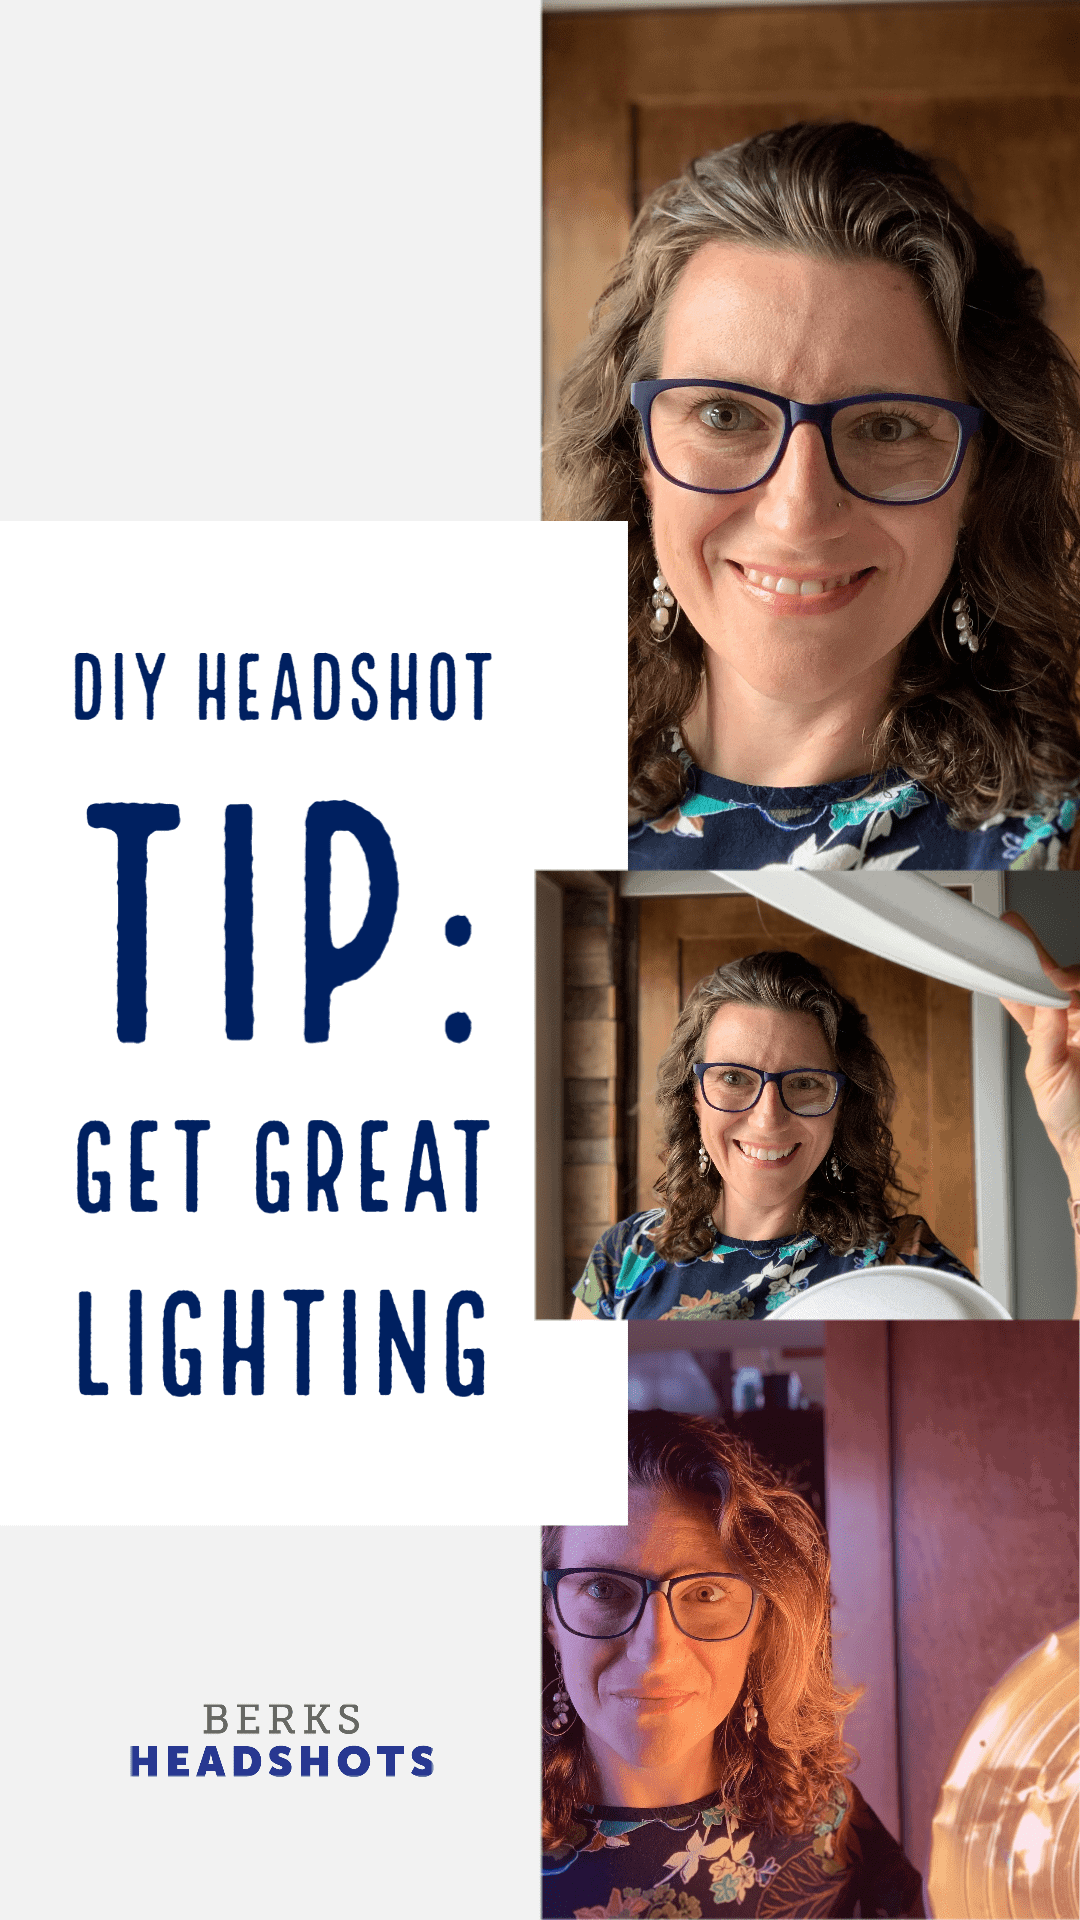 DIY Headshot: How to Find Great Lighting for your Headshot Selfie